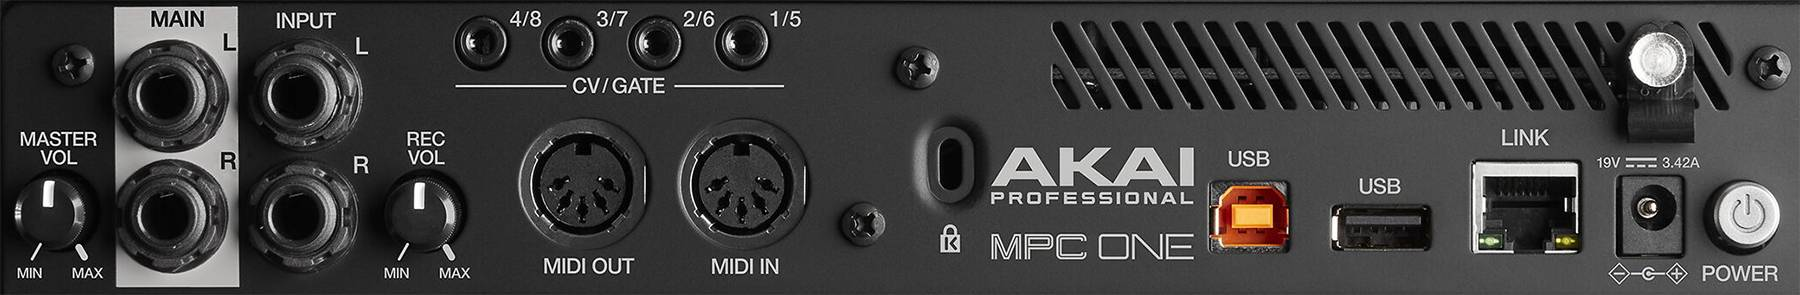 Akai MPC One Standalone Music Production Center mpc-one-x-us Product Image 6